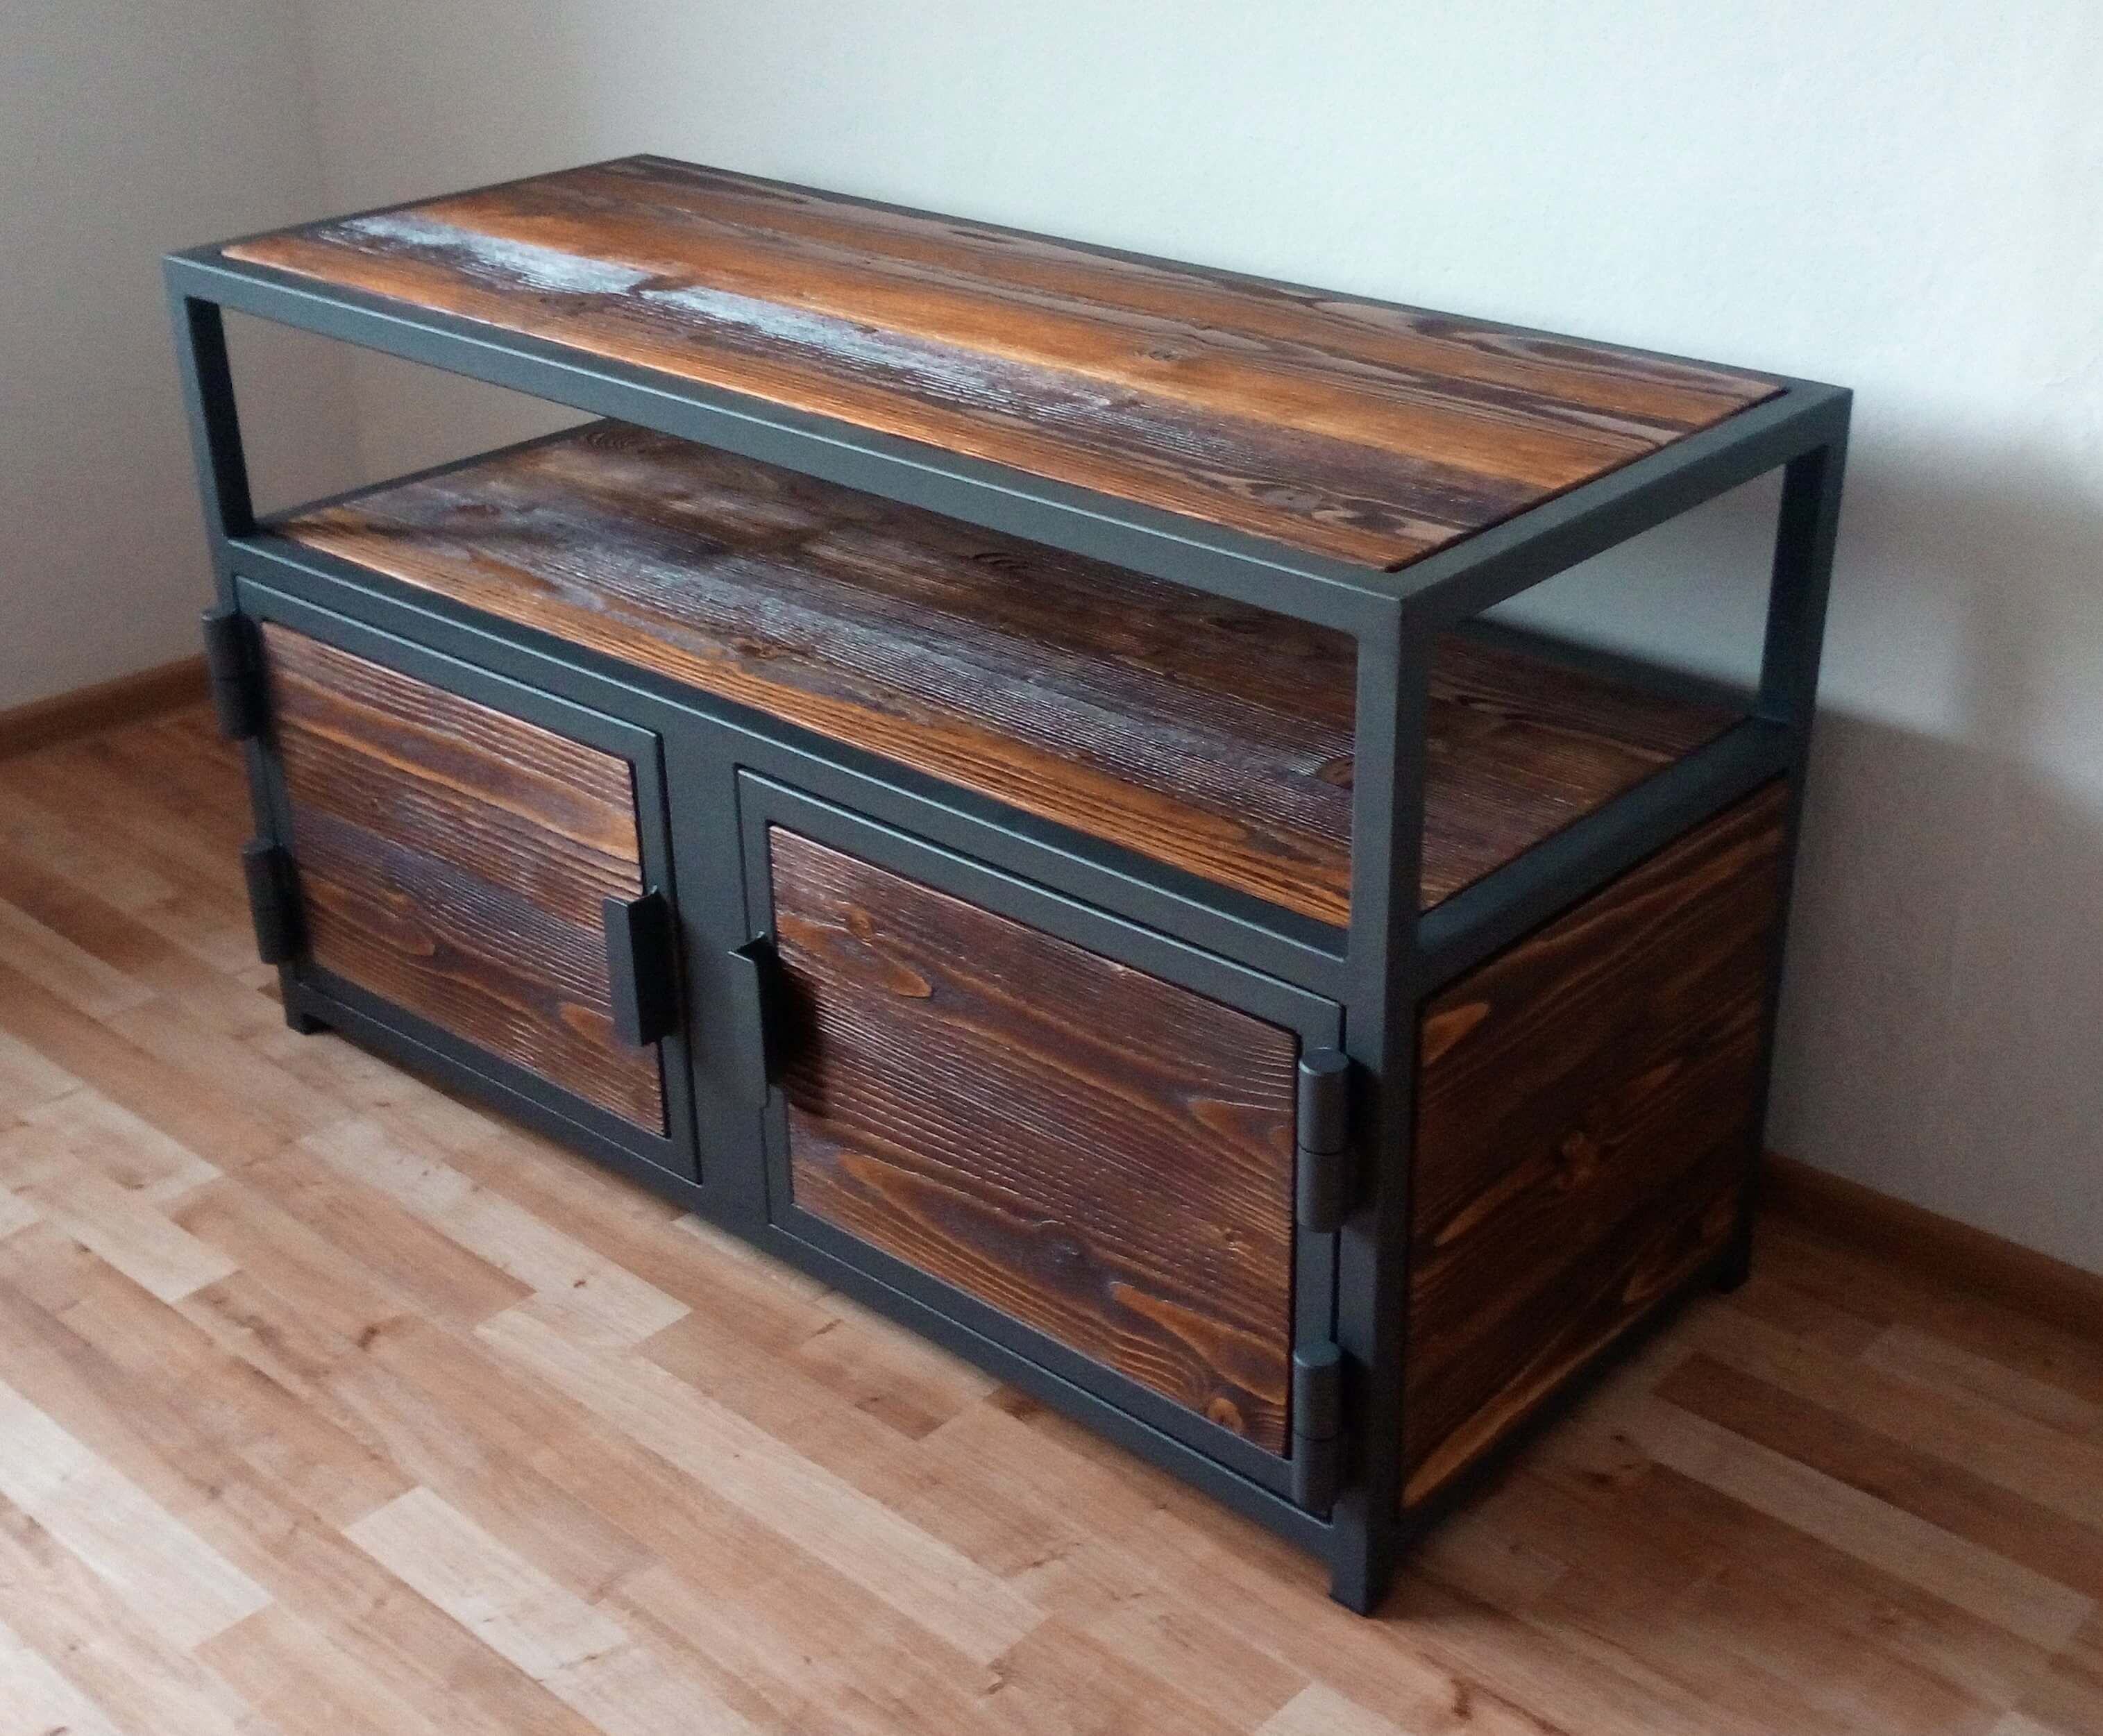 TV komoda, televízna komoda, kovová komoda, TV komoda z masívu, industriálna TV komoda, televizní komoda, TV komoda z masivu, industriální TV komoda TV chest of drawers TV Kommode TV table TV-Tisch